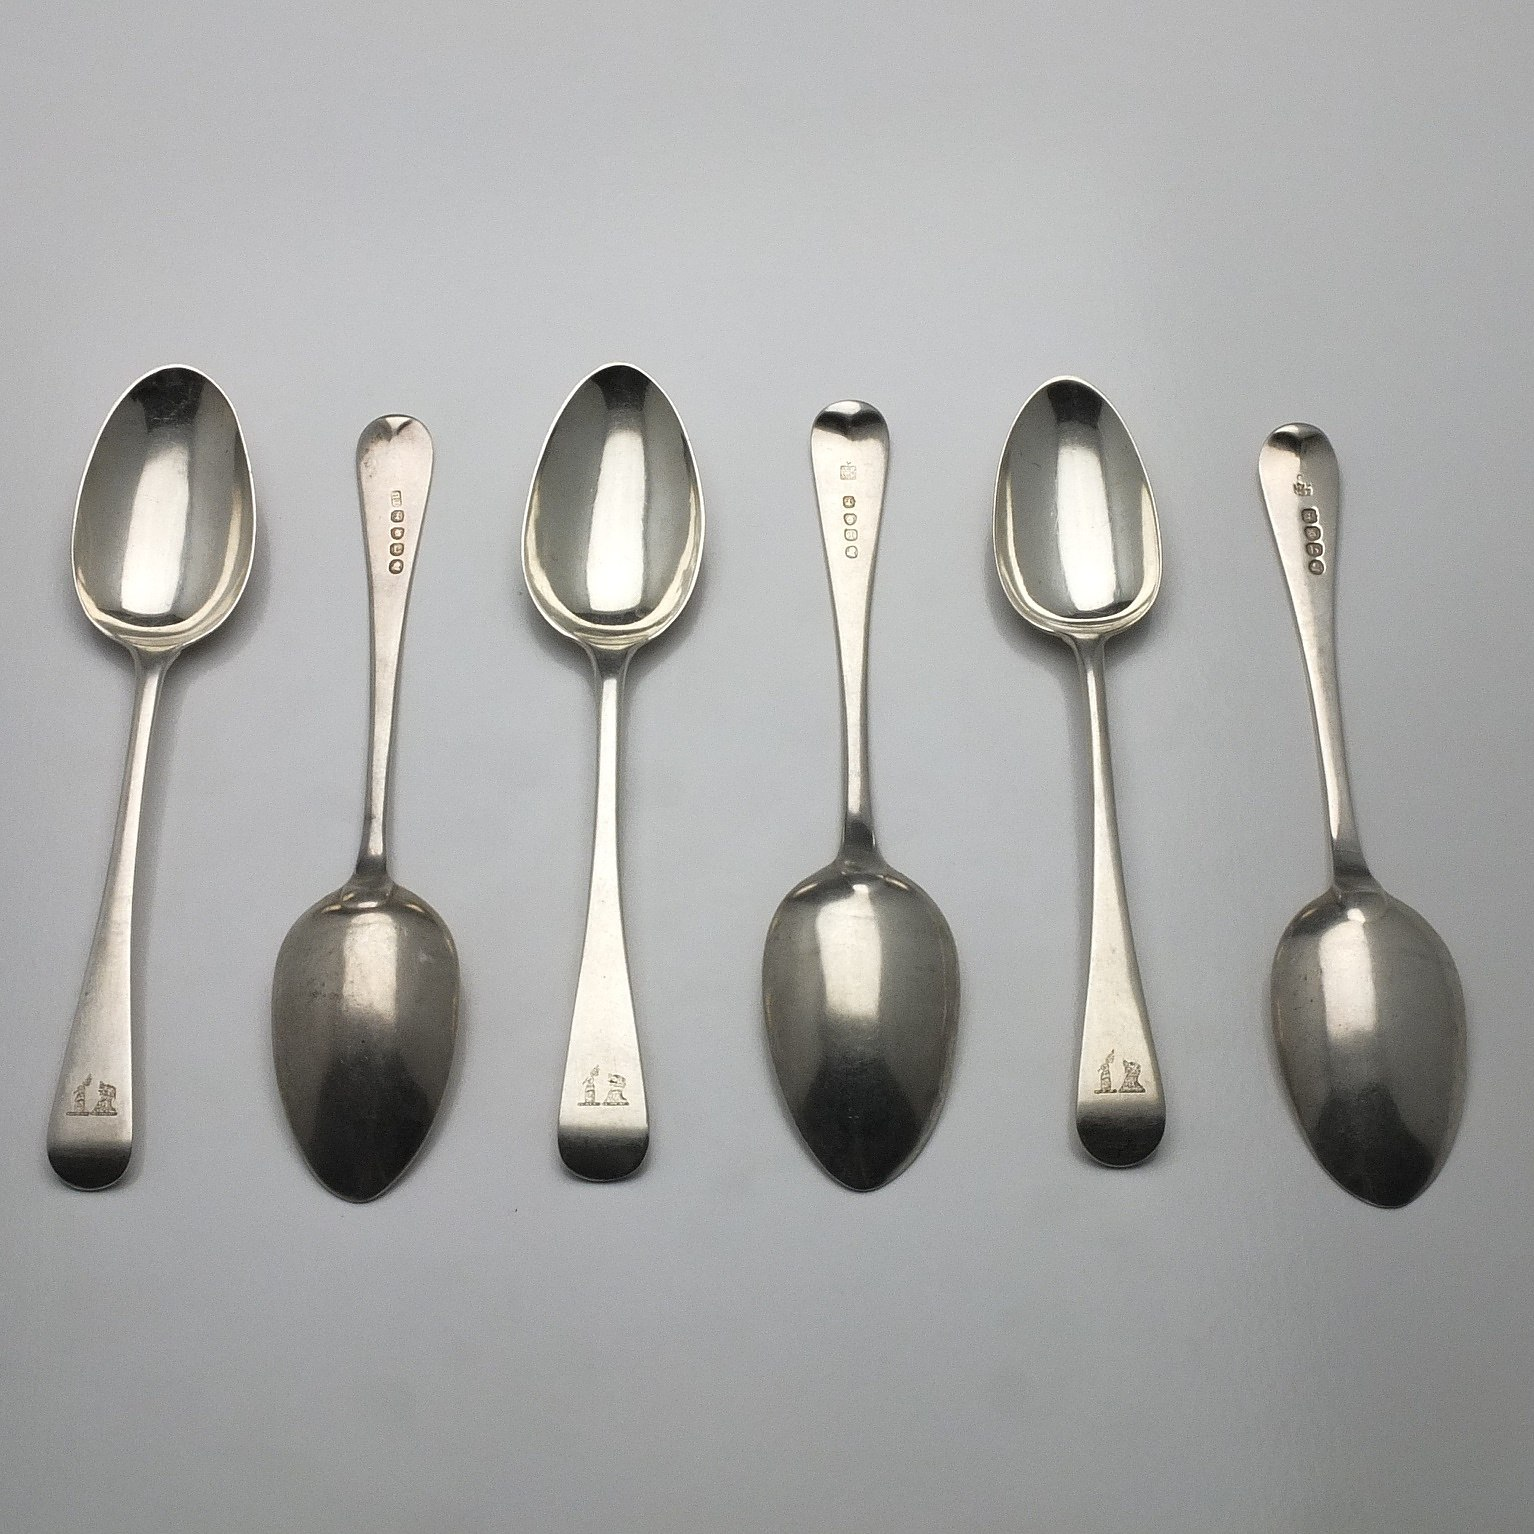 'Six George III Crested Sterling Silver Spoons Including Two William Eley, William Fearn & William Chawner London 1814'